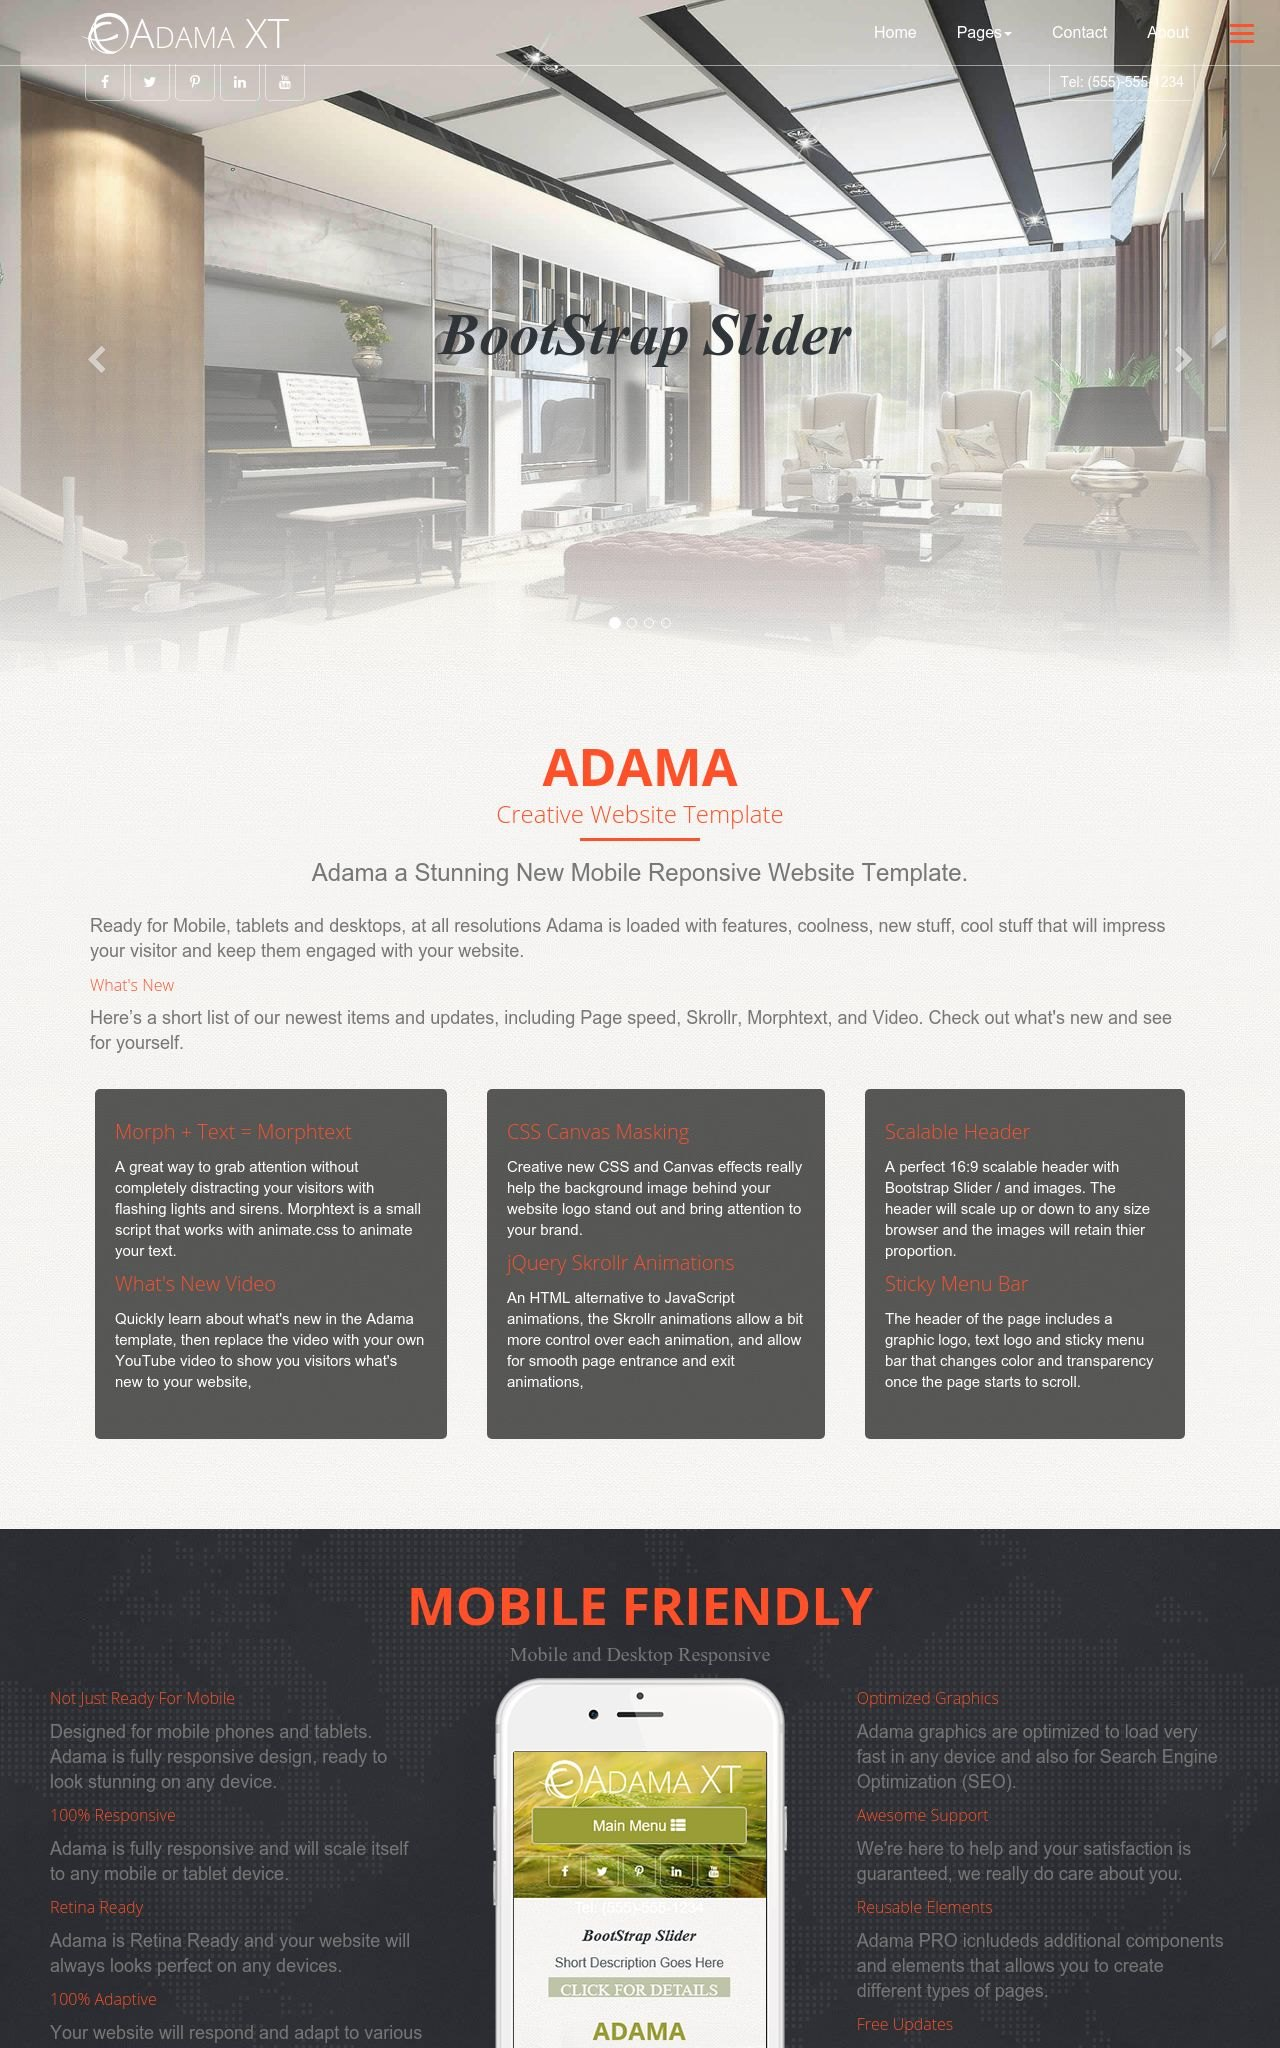 Interior-design Web Templates